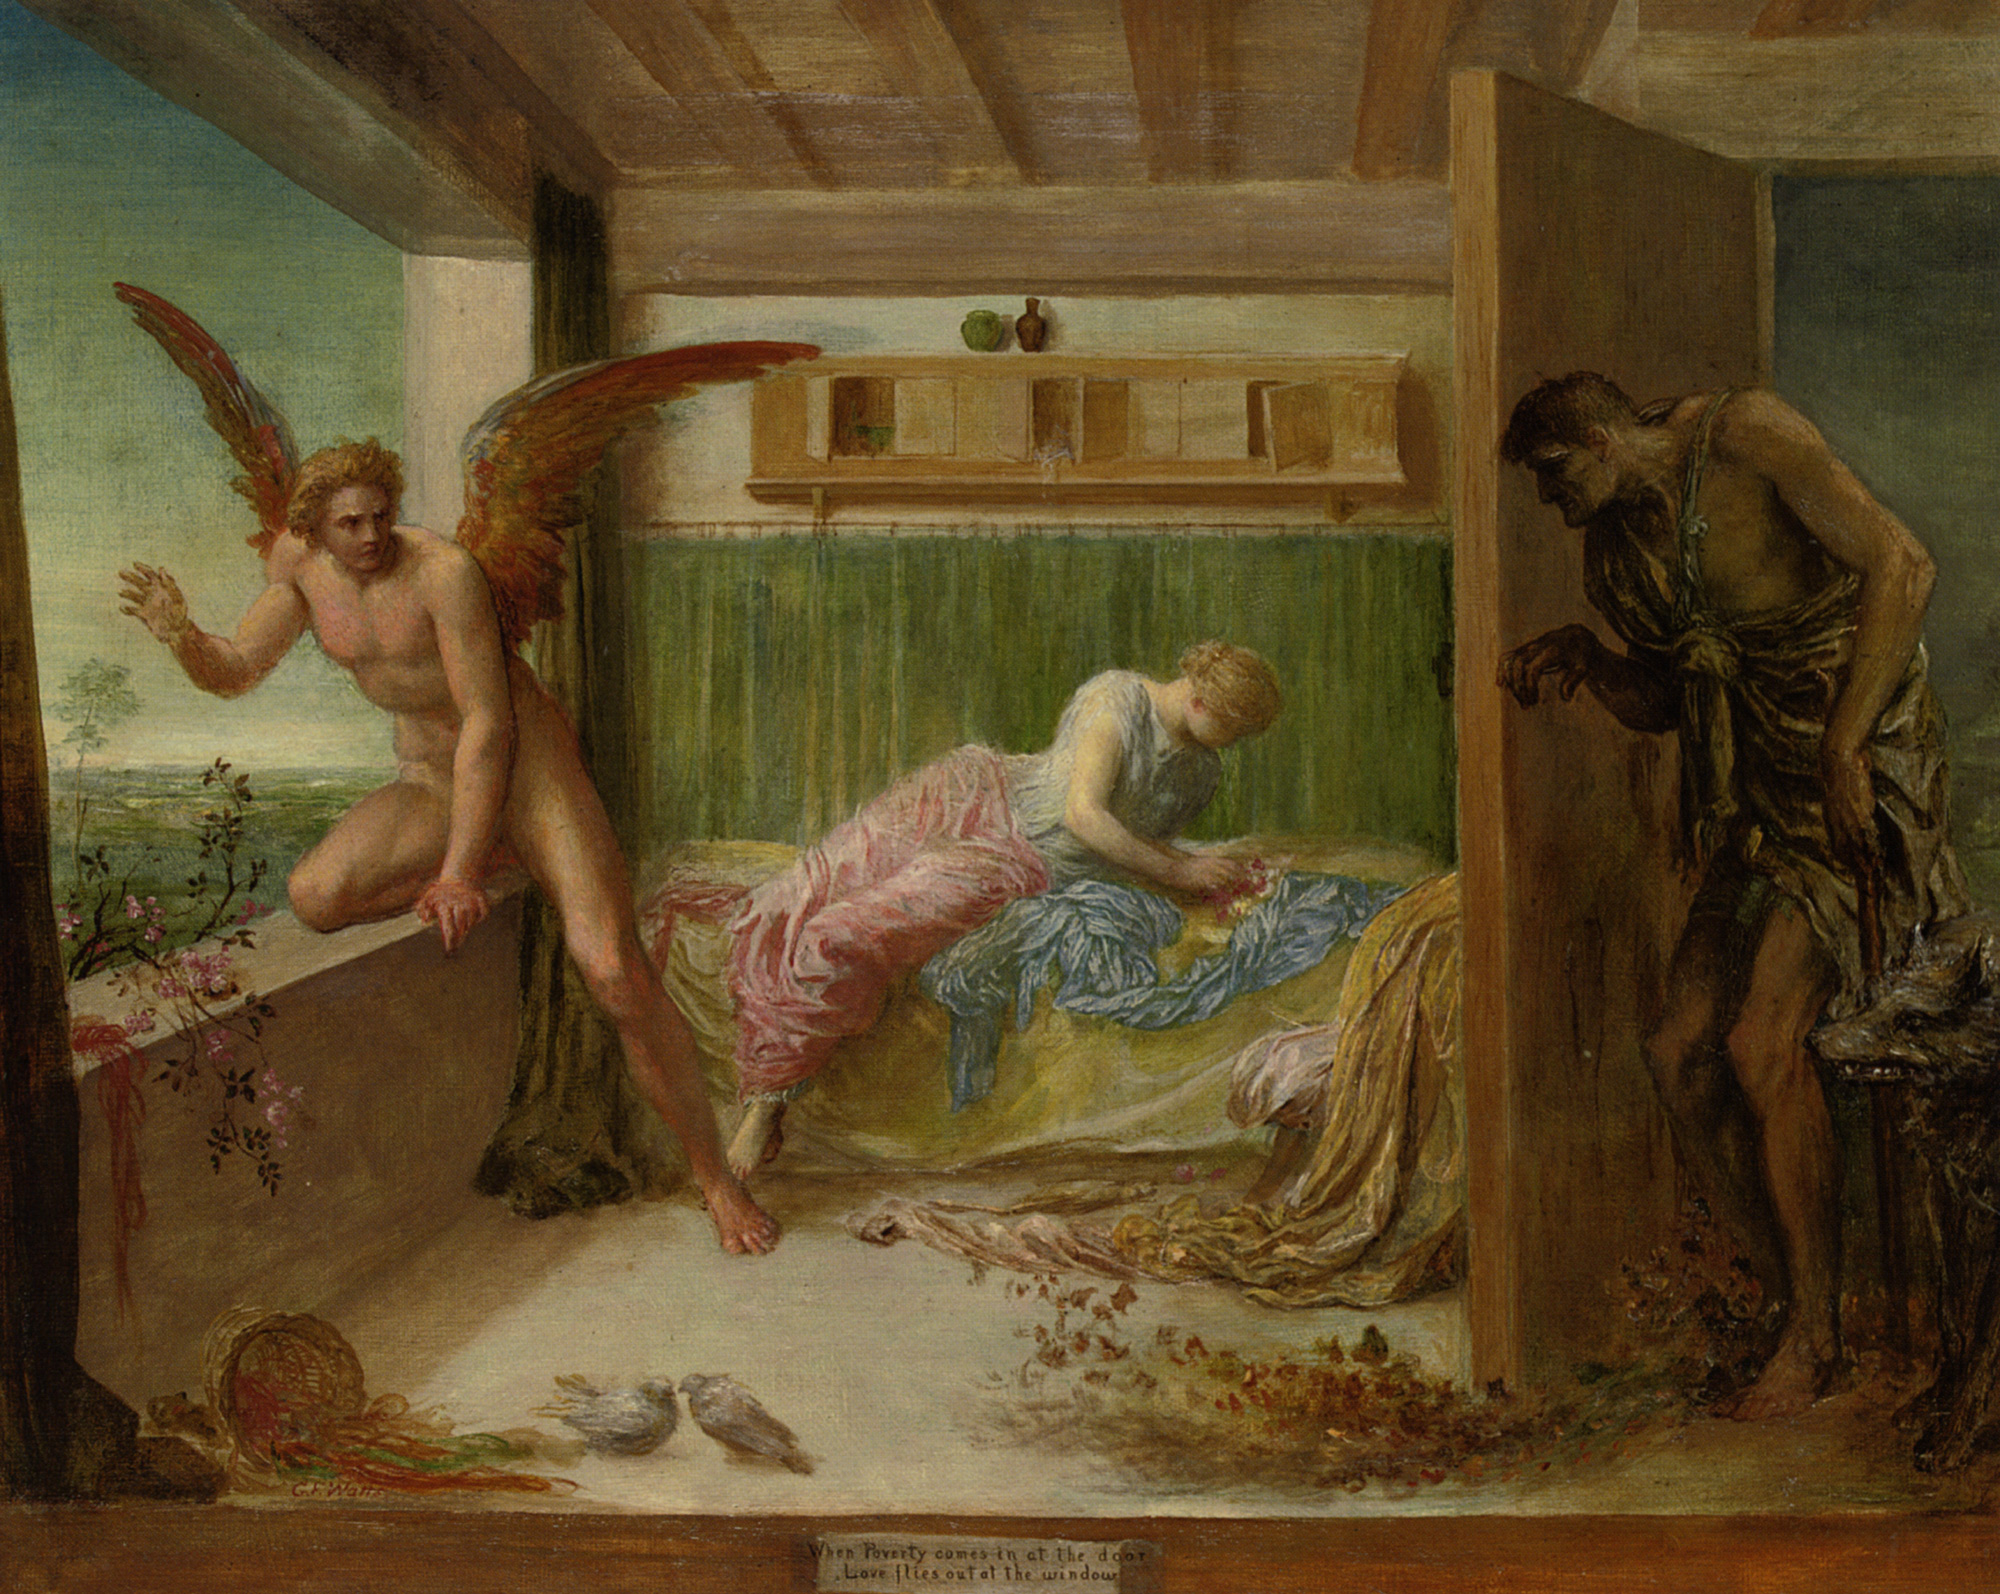 When poverty comes in at the door love flies out the window :: George Frederick Watts - Allegory in art and painting ôîòî